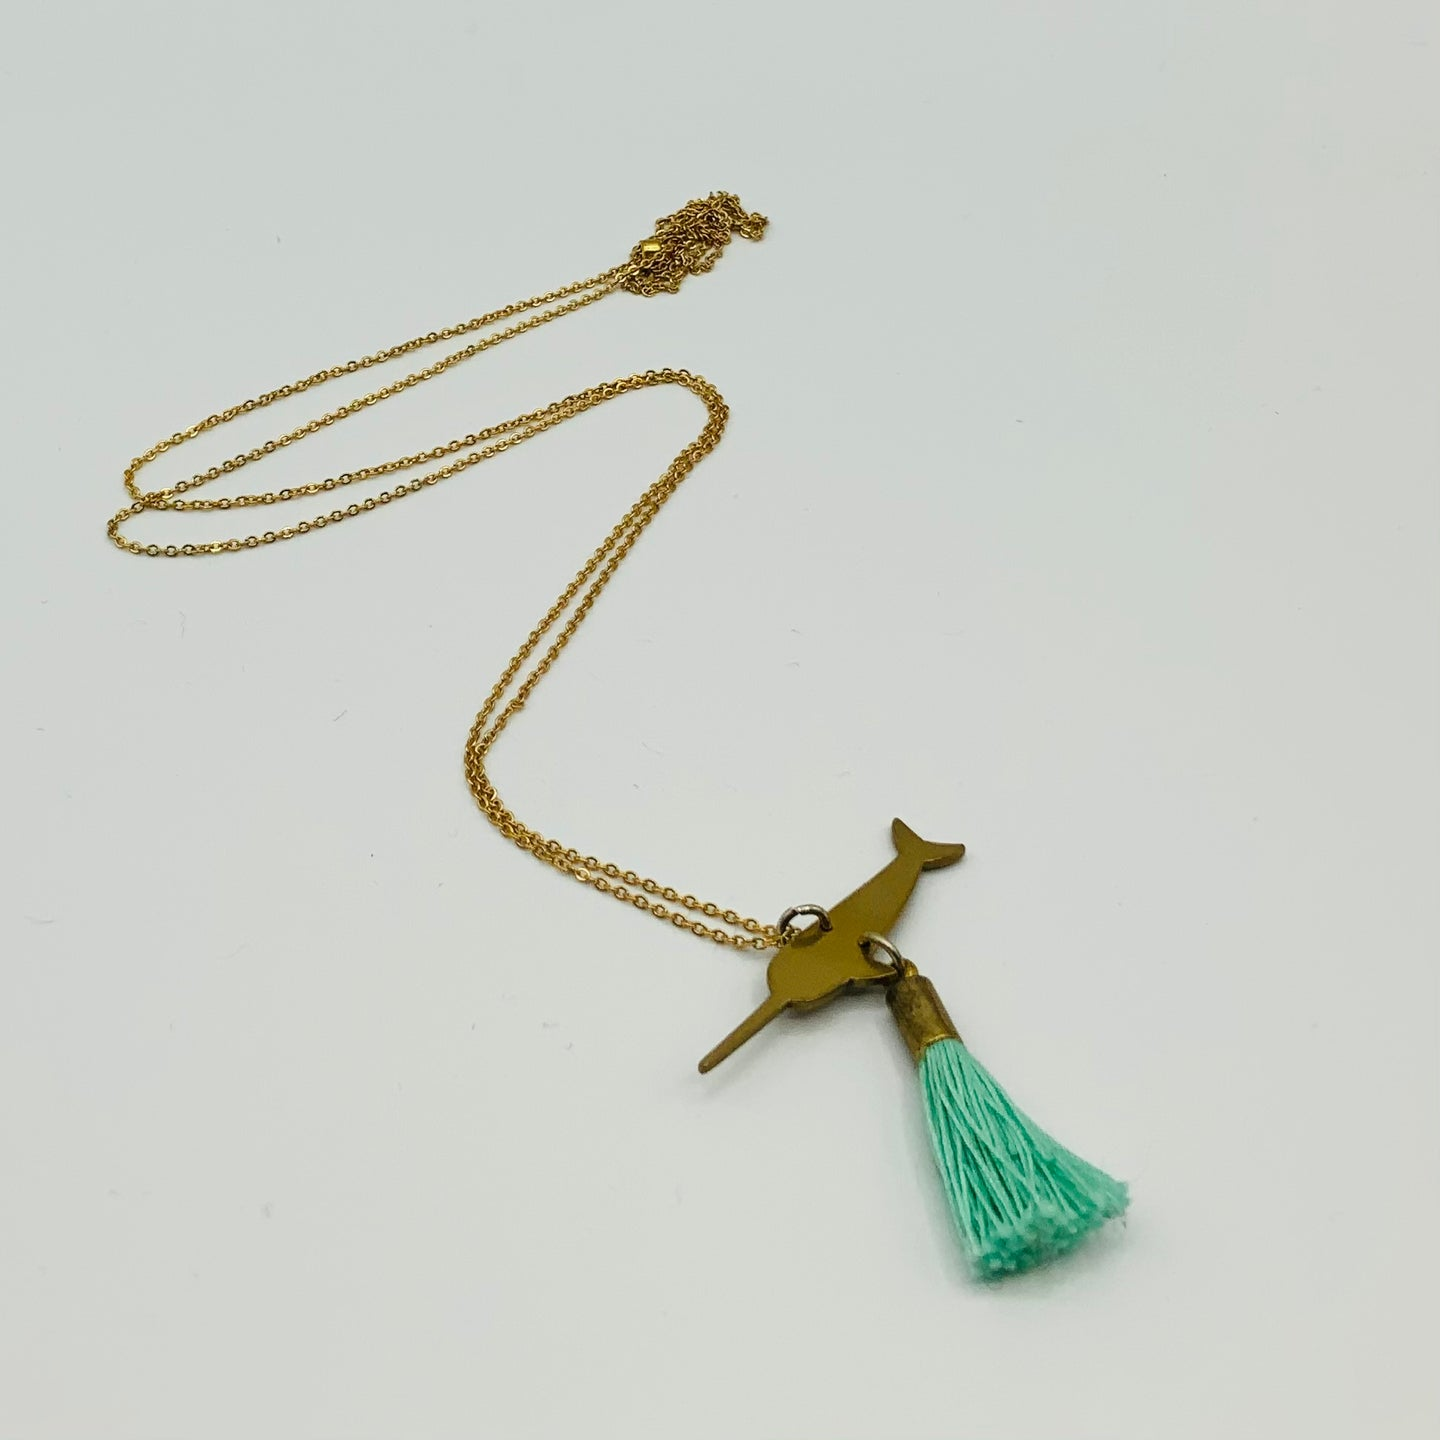 MyBearHands Tassel Totem Necklace - Shop at the Old Fire Station